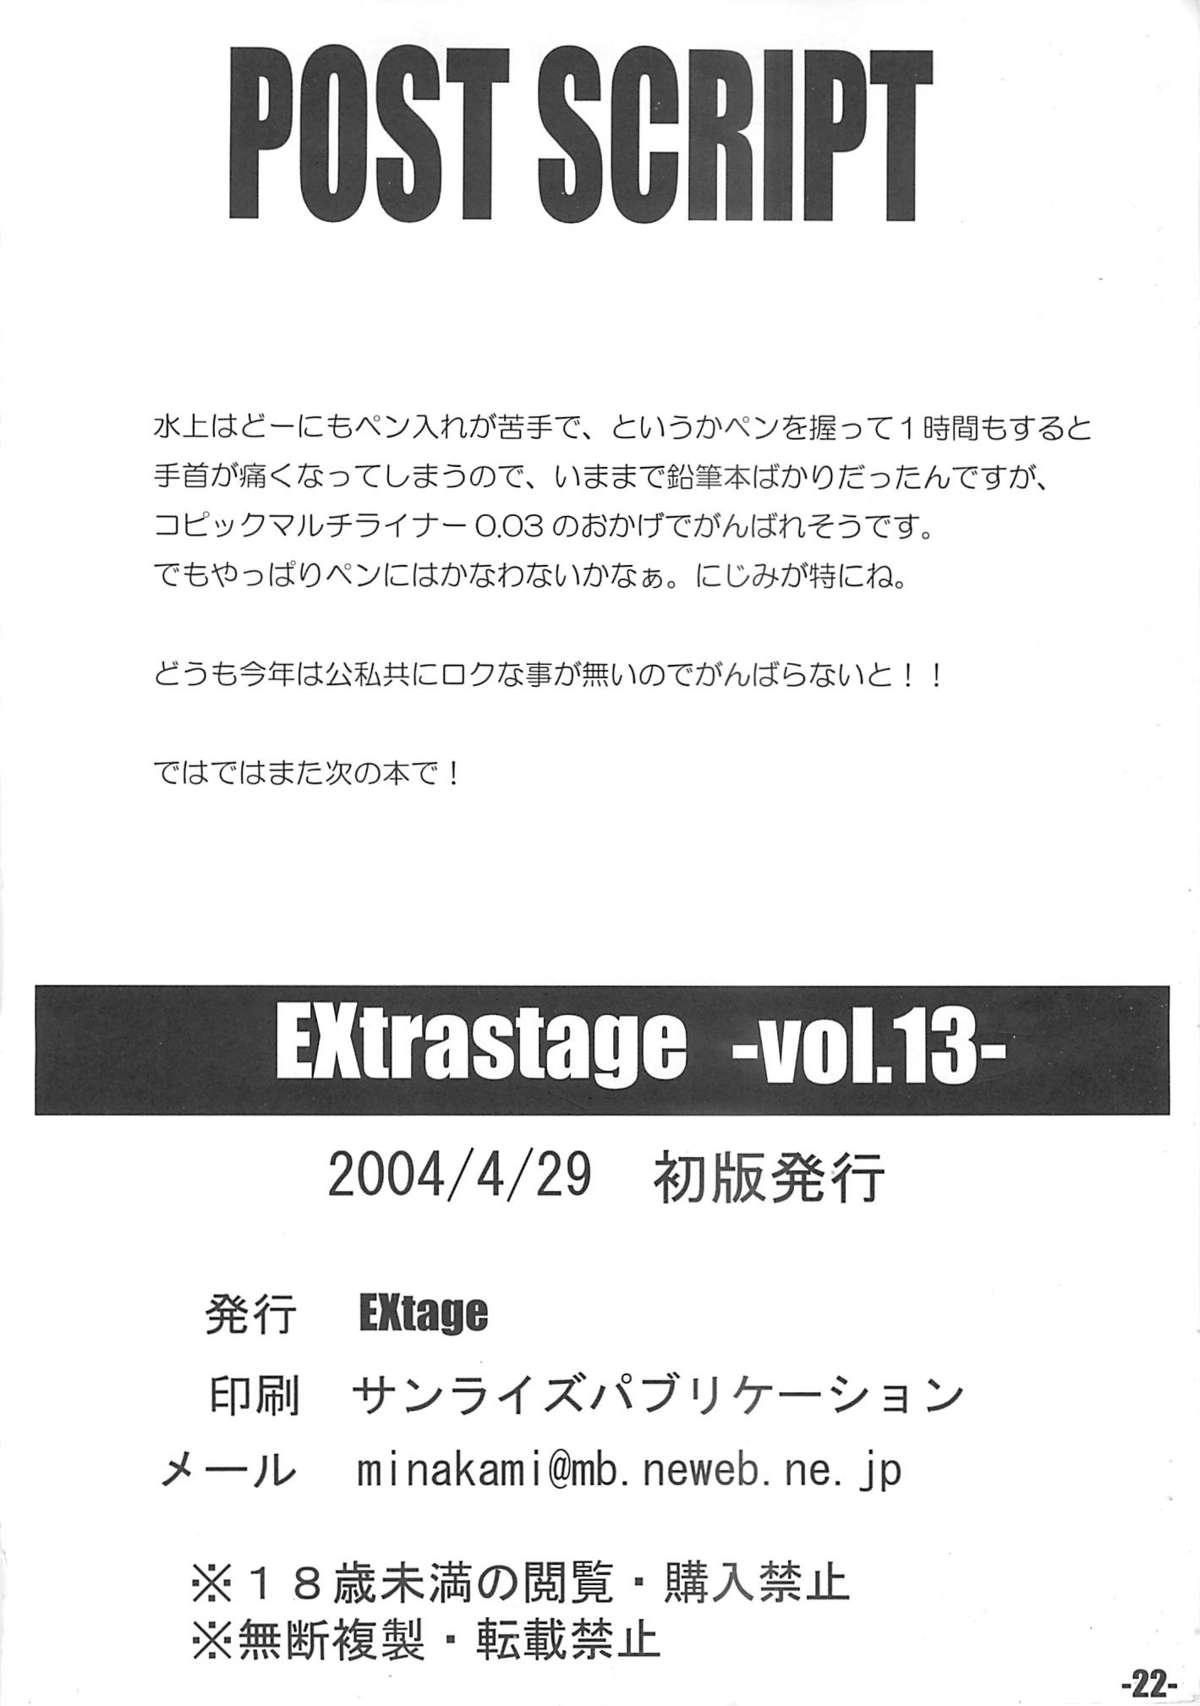 EXtra stage vol. 13 20